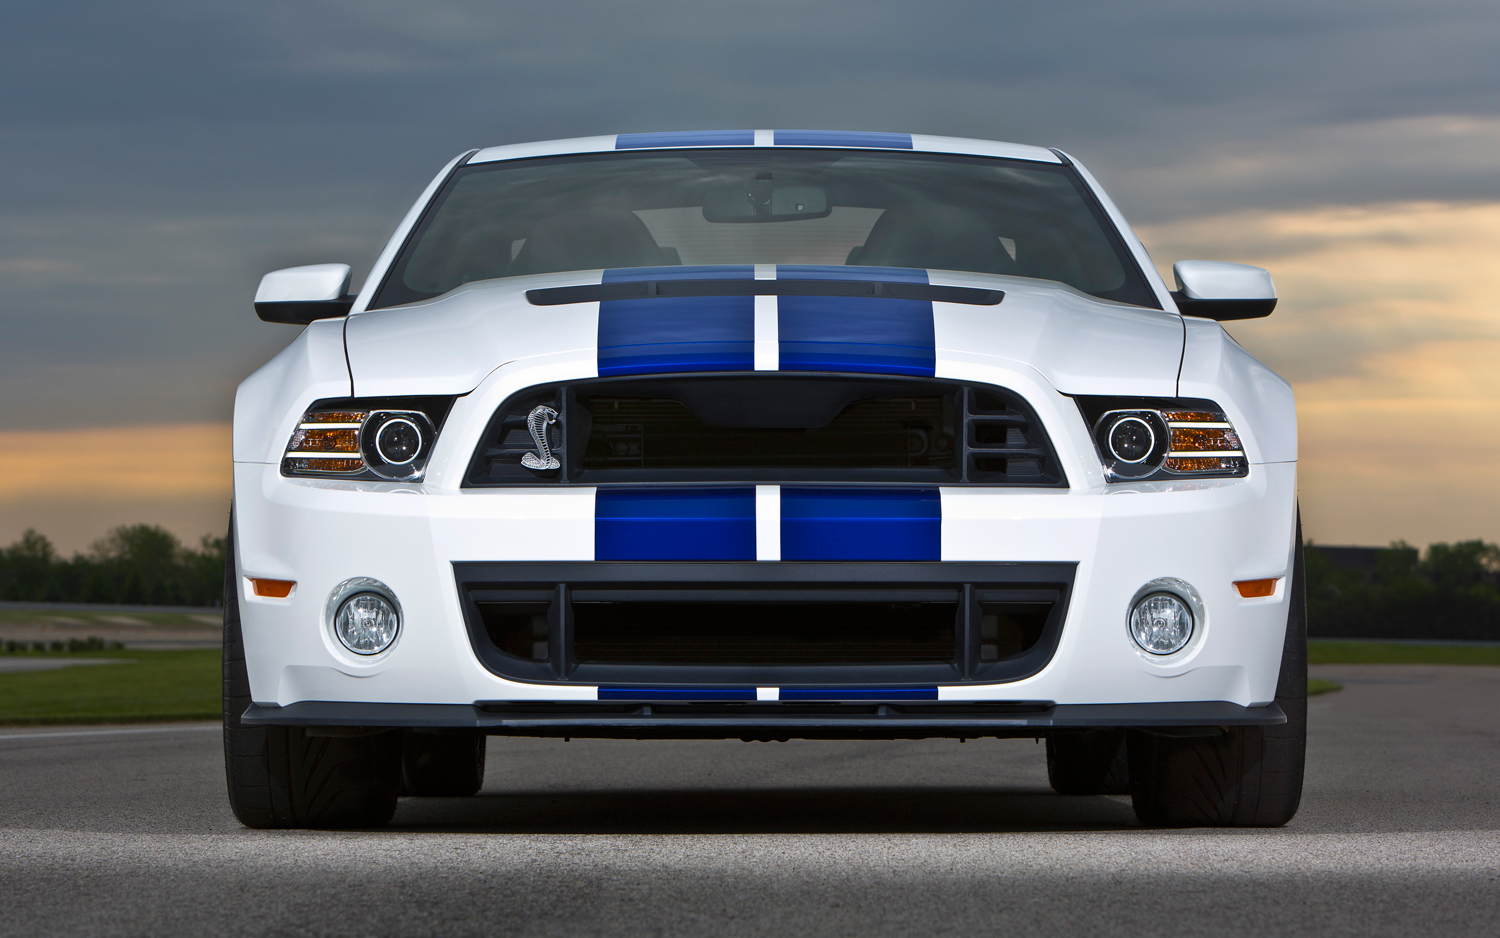 2013 Ford Shelby Gt500 #5